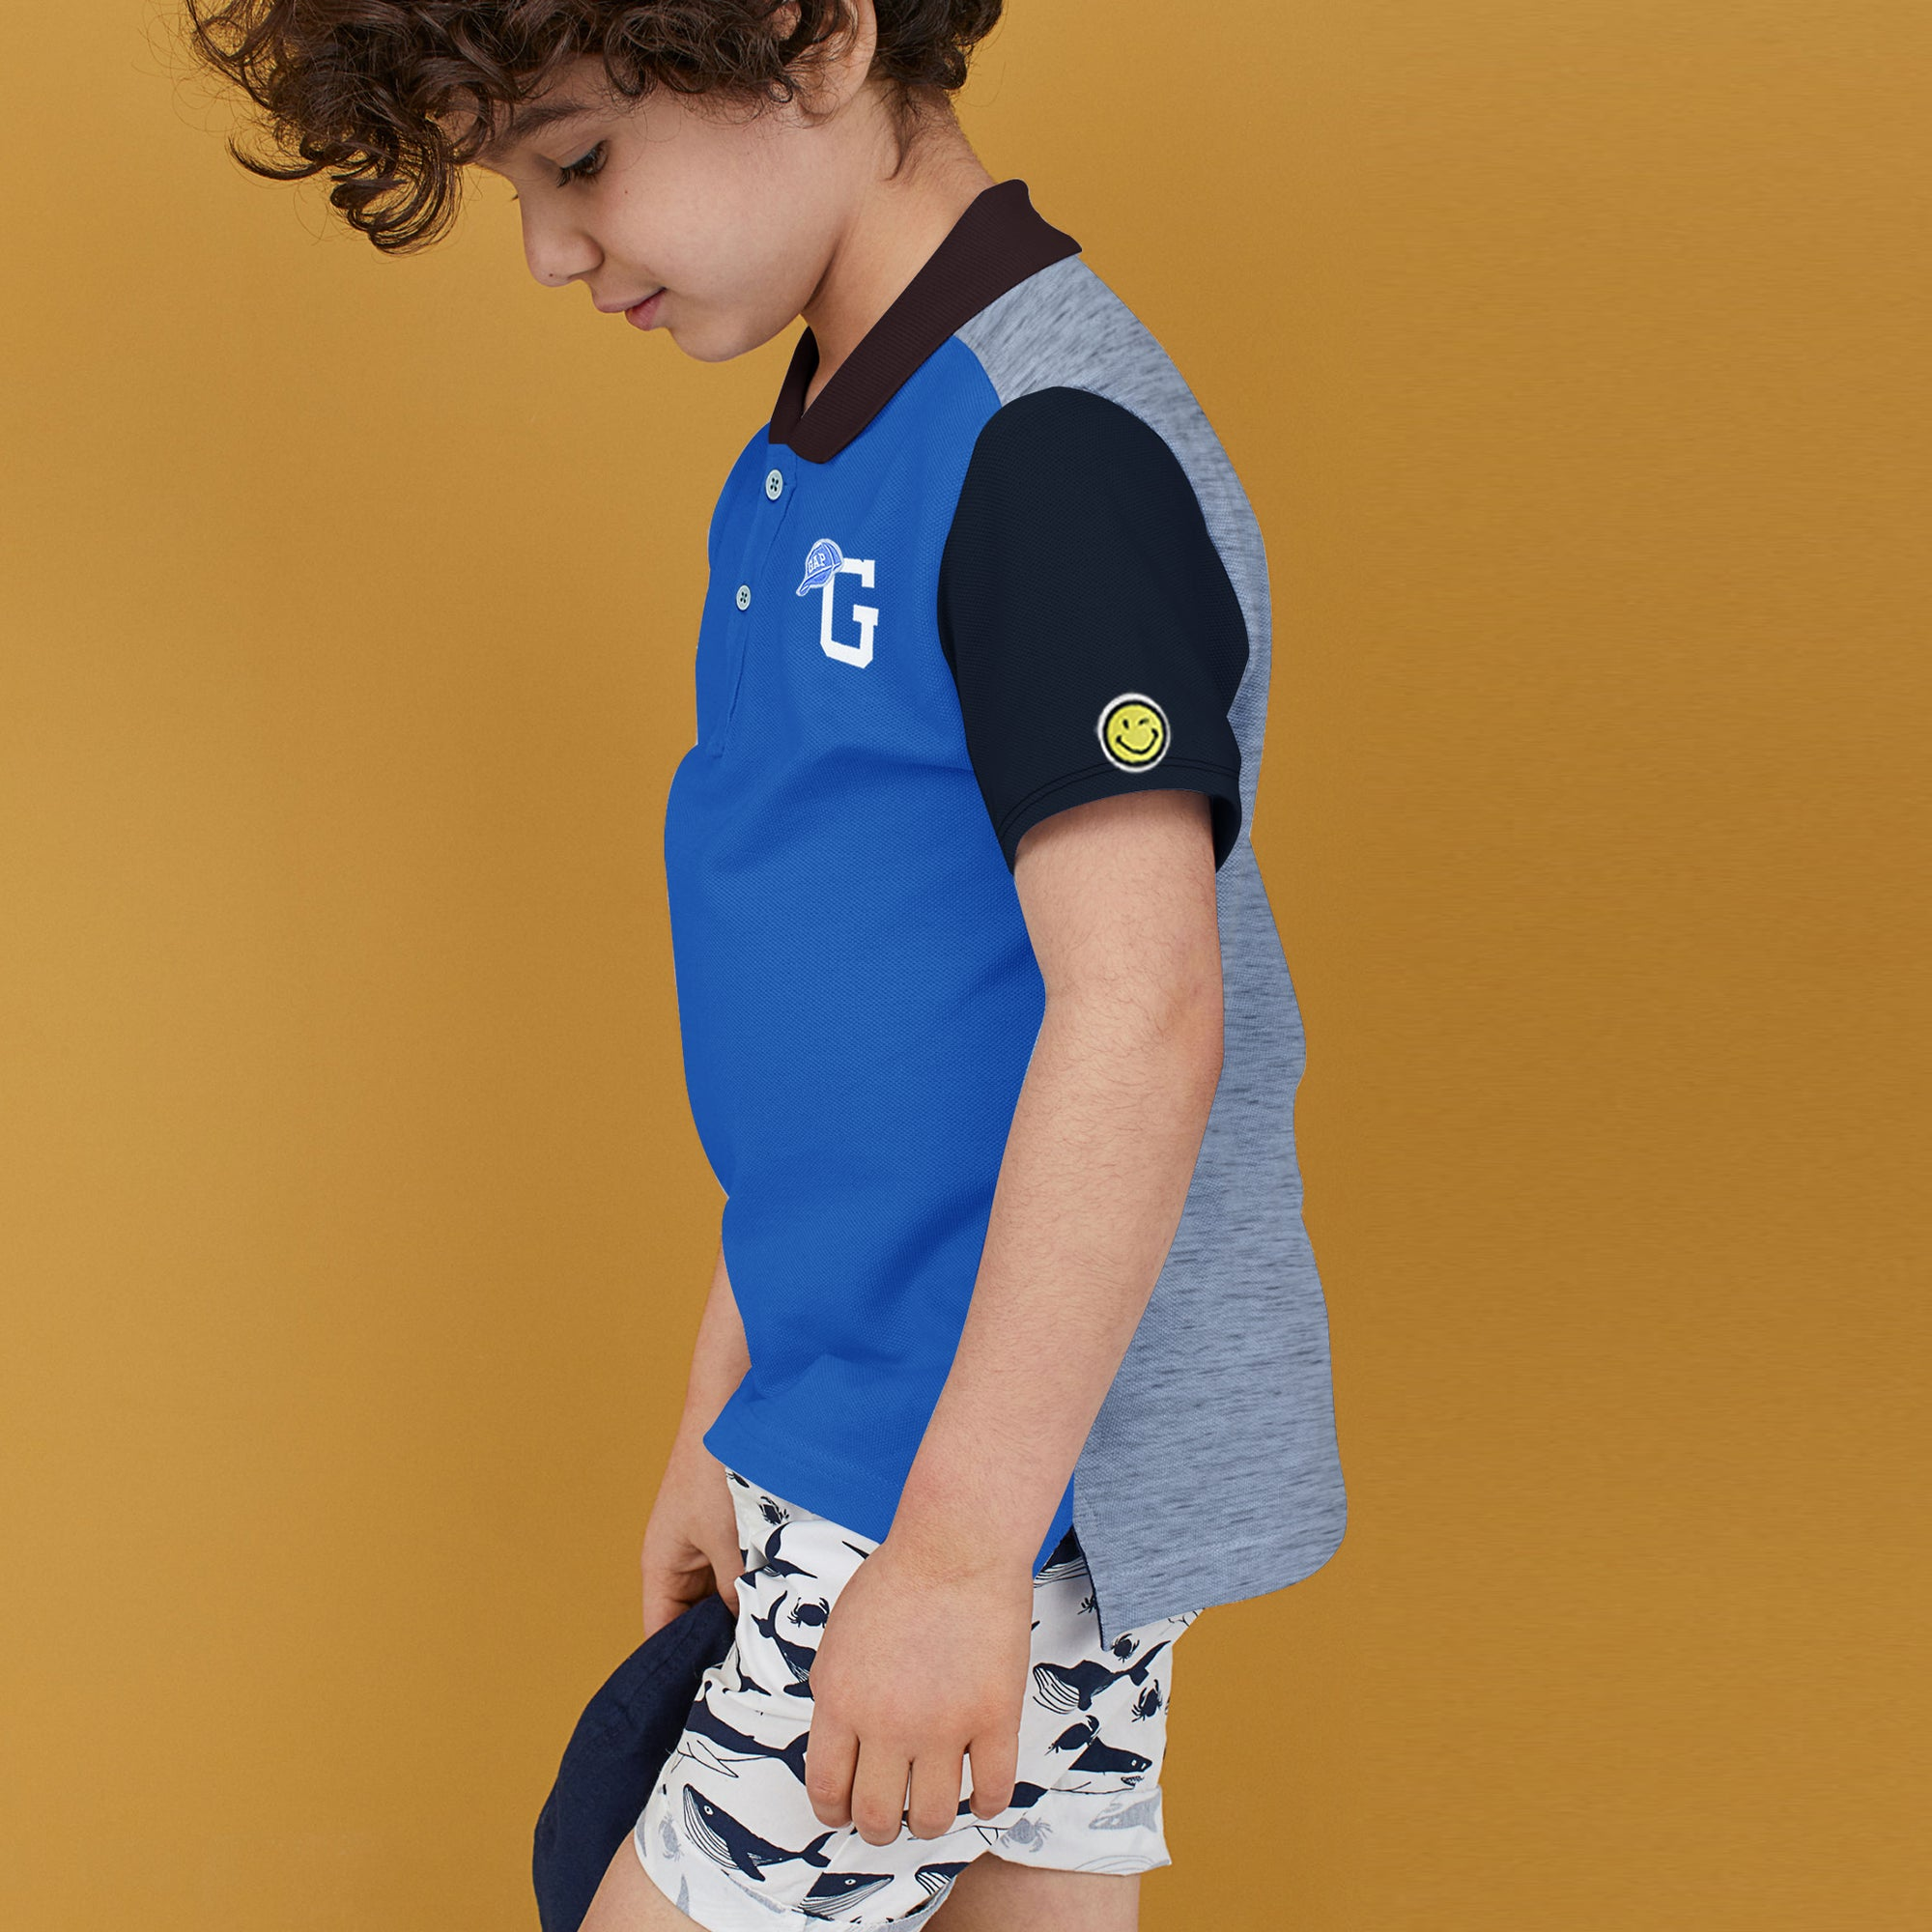 brandsego - GAP Half Sleeve P.Q Polo Shirt For Kids-Blue with Panels-BE8513